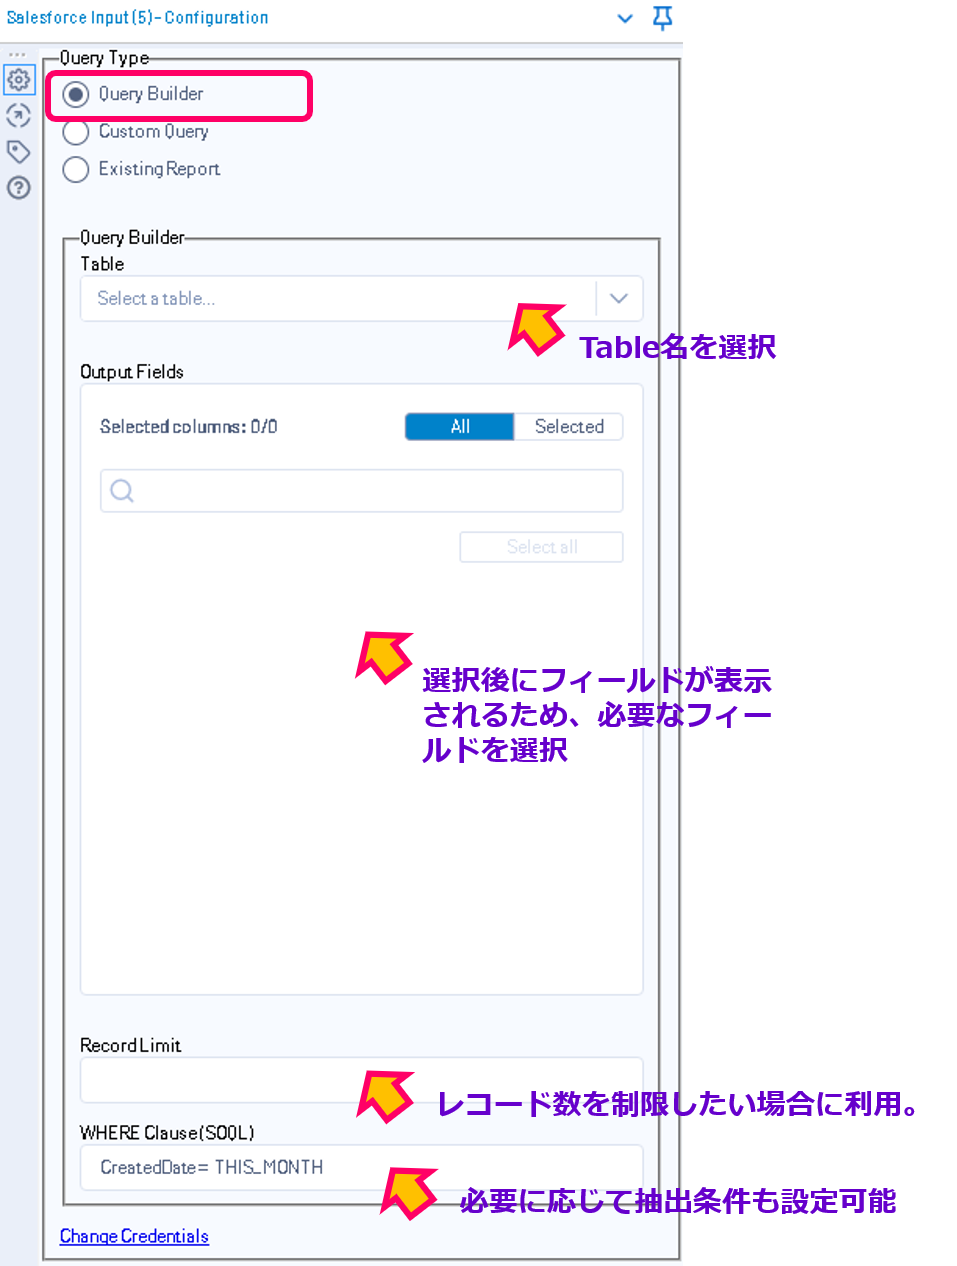 Salesforce Alteryx SalesforceInput Configulation 設定画面 クエリビルダ